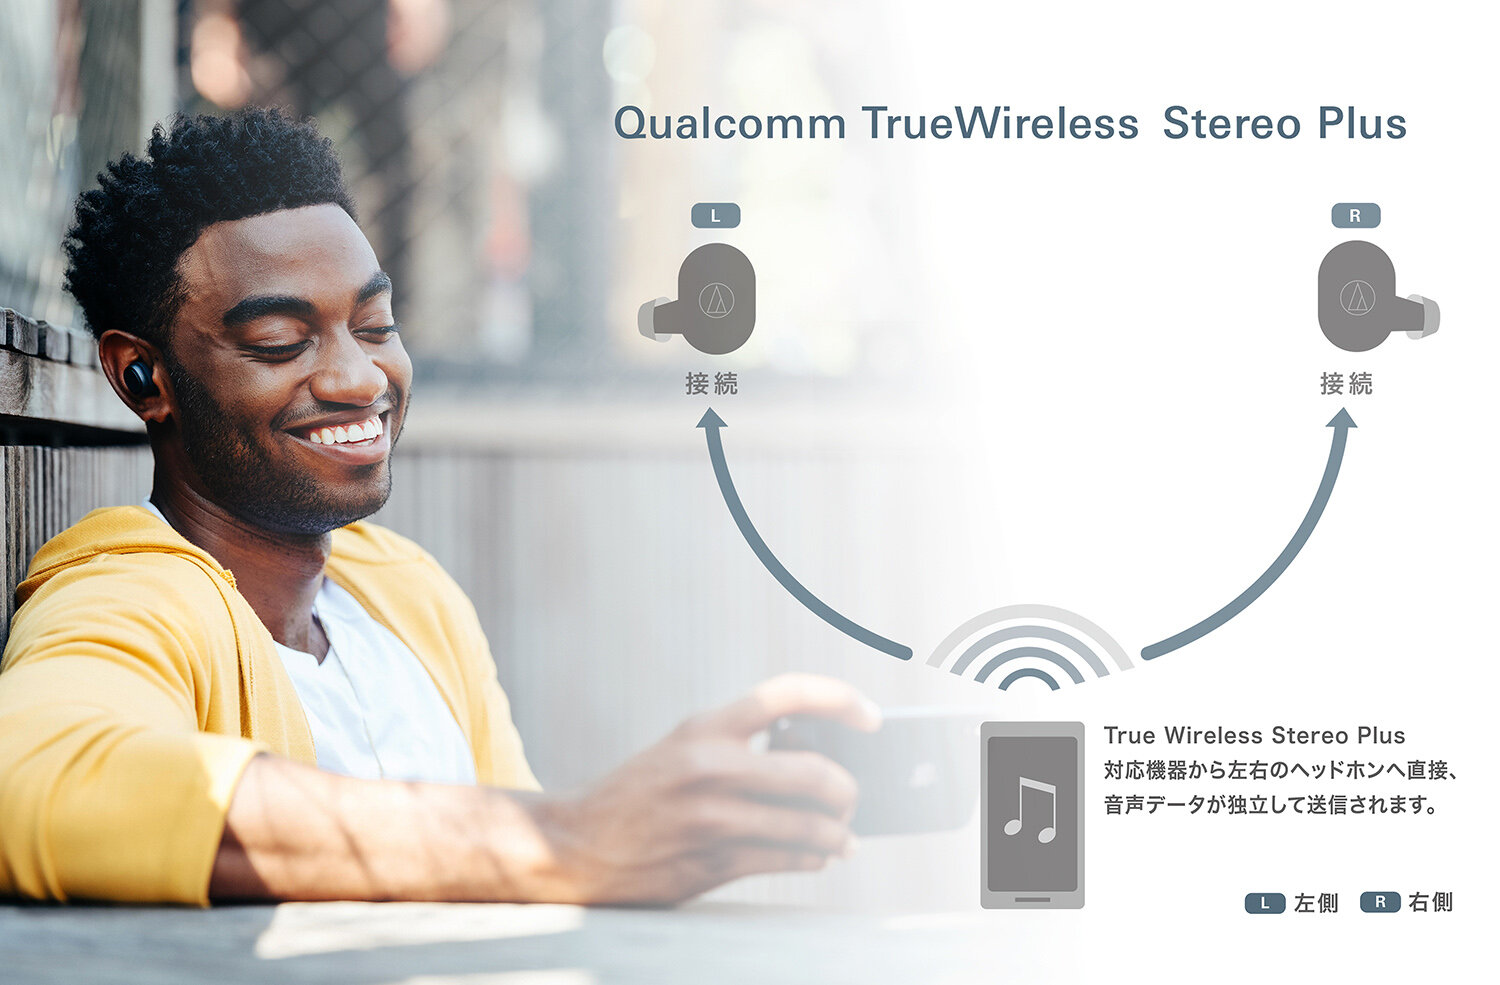 Qualcomm TrueWireless Stereo Plusに対応